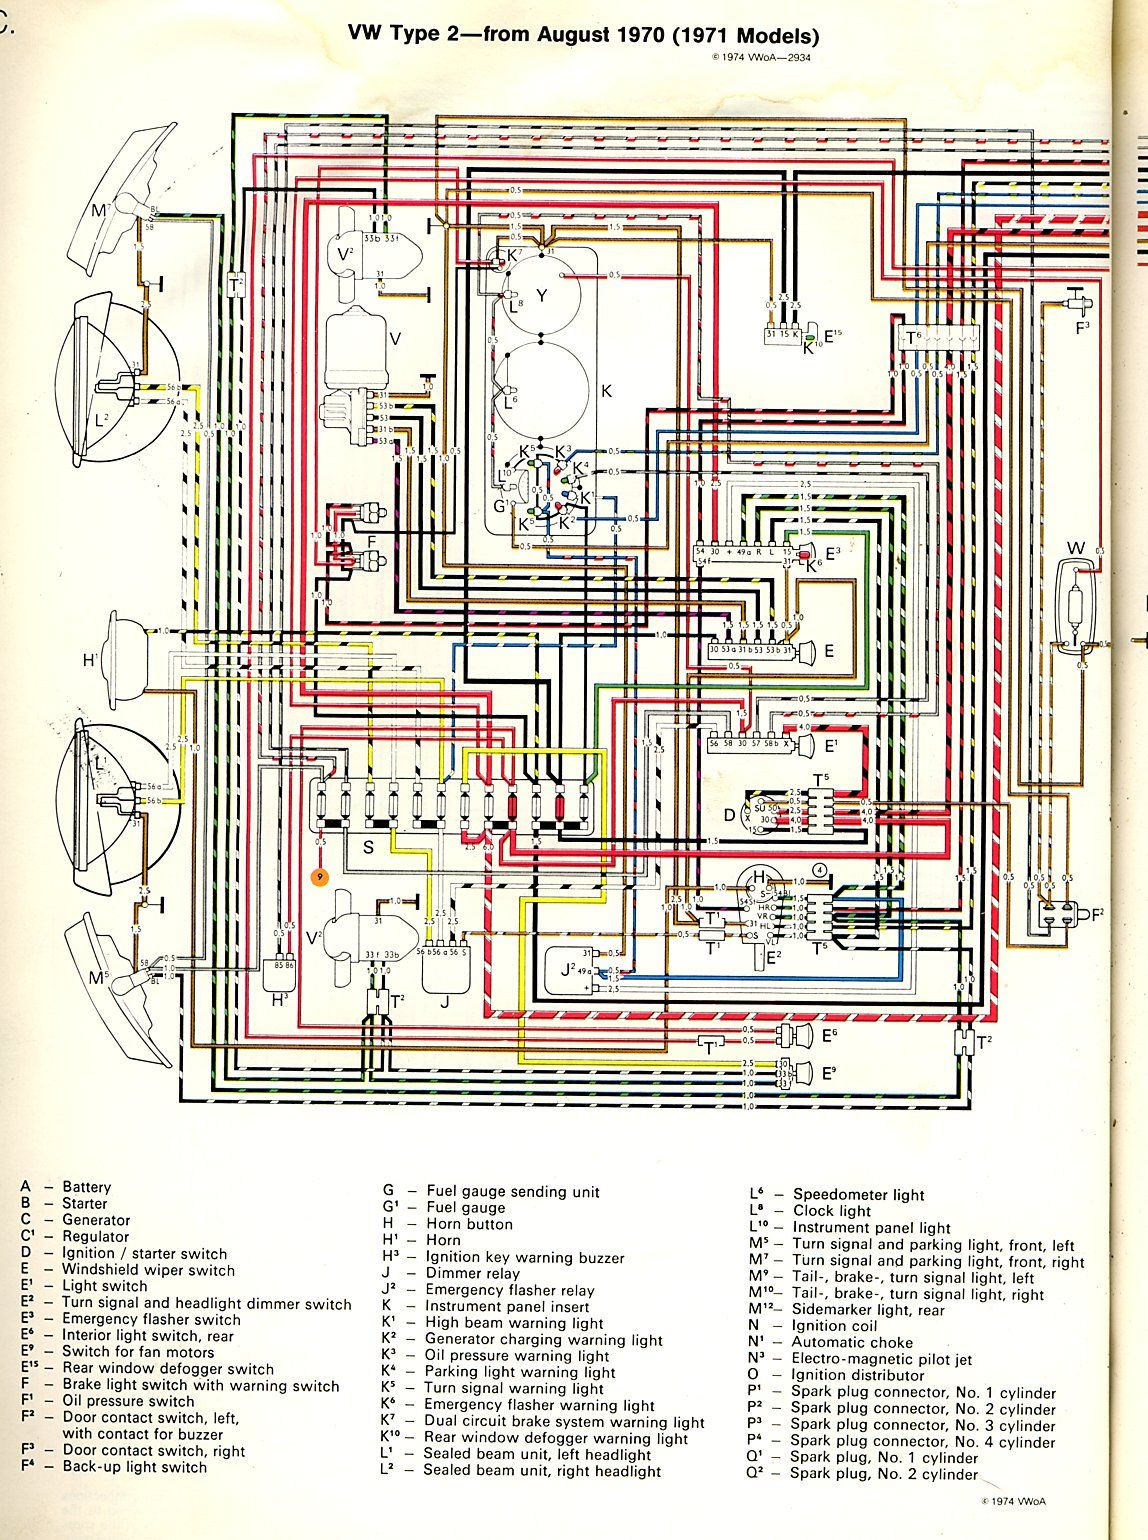 26730f3f6ceb3f1e1b50646c57249616 1971 bus wiring diagram thegoldenbug com stuff to try 1971 vw super beetle wiring diagram at bayanpartner.co